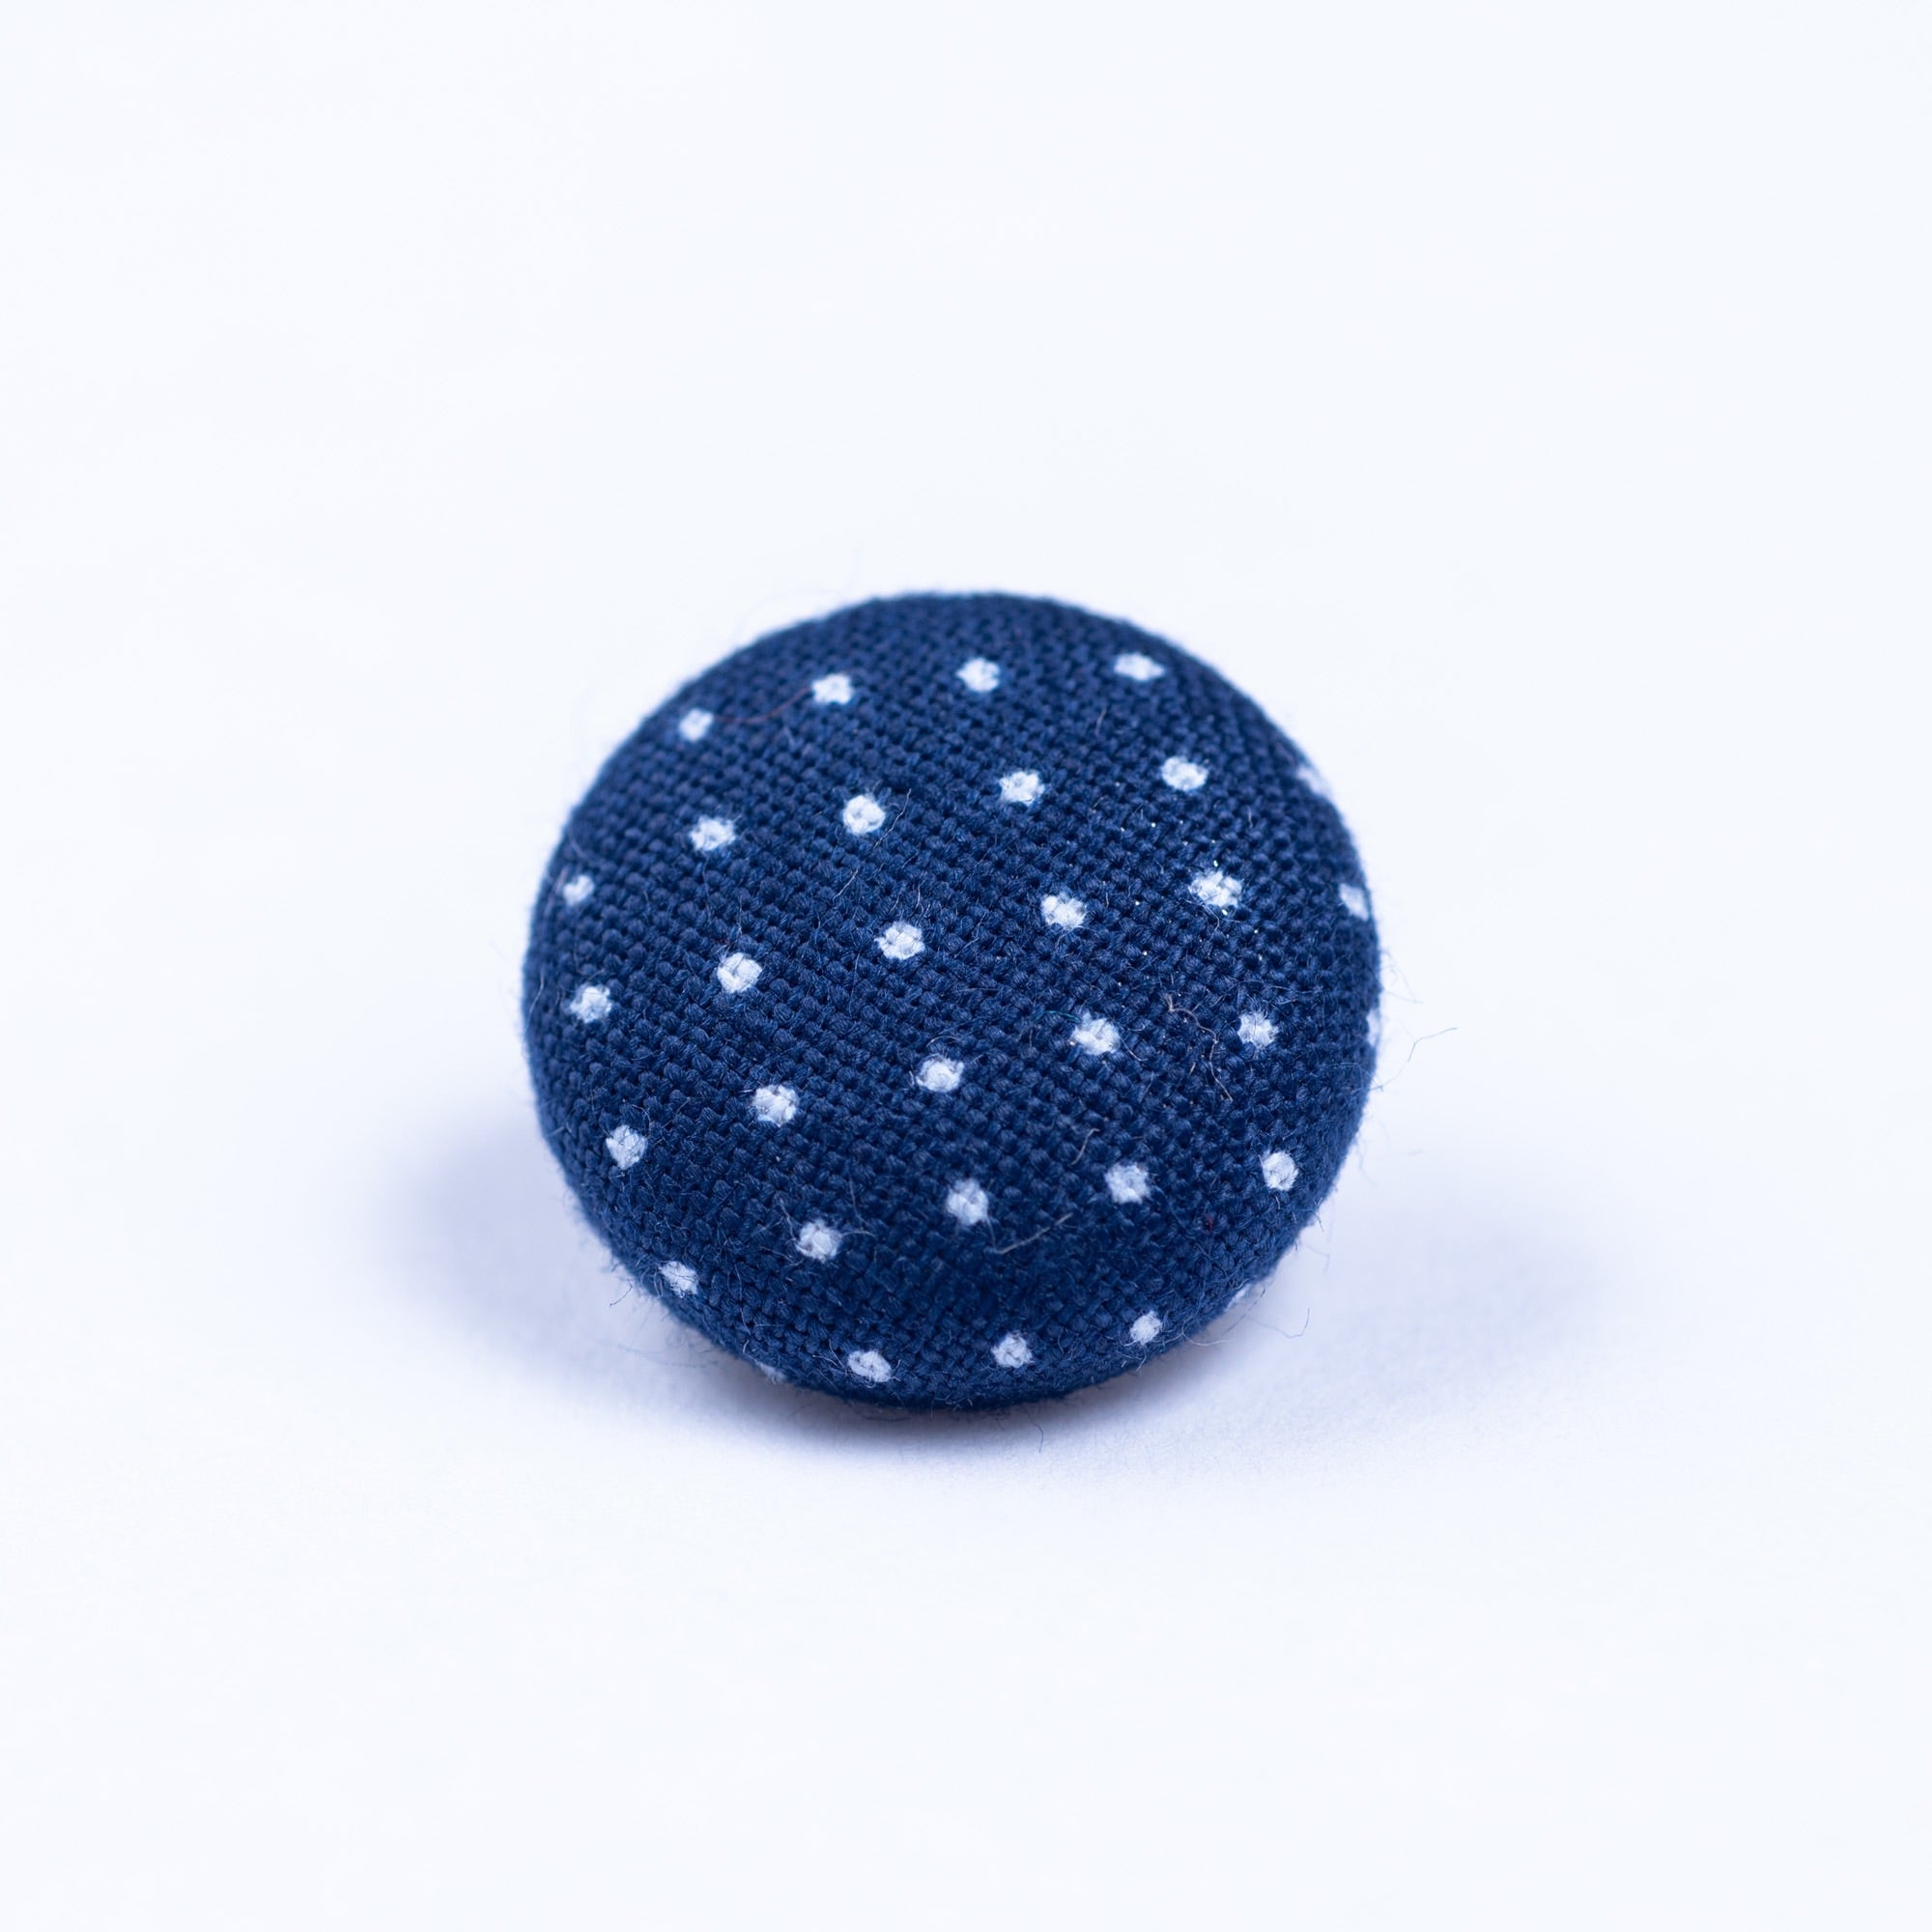 blue and white button lapel pin - Oxford Square